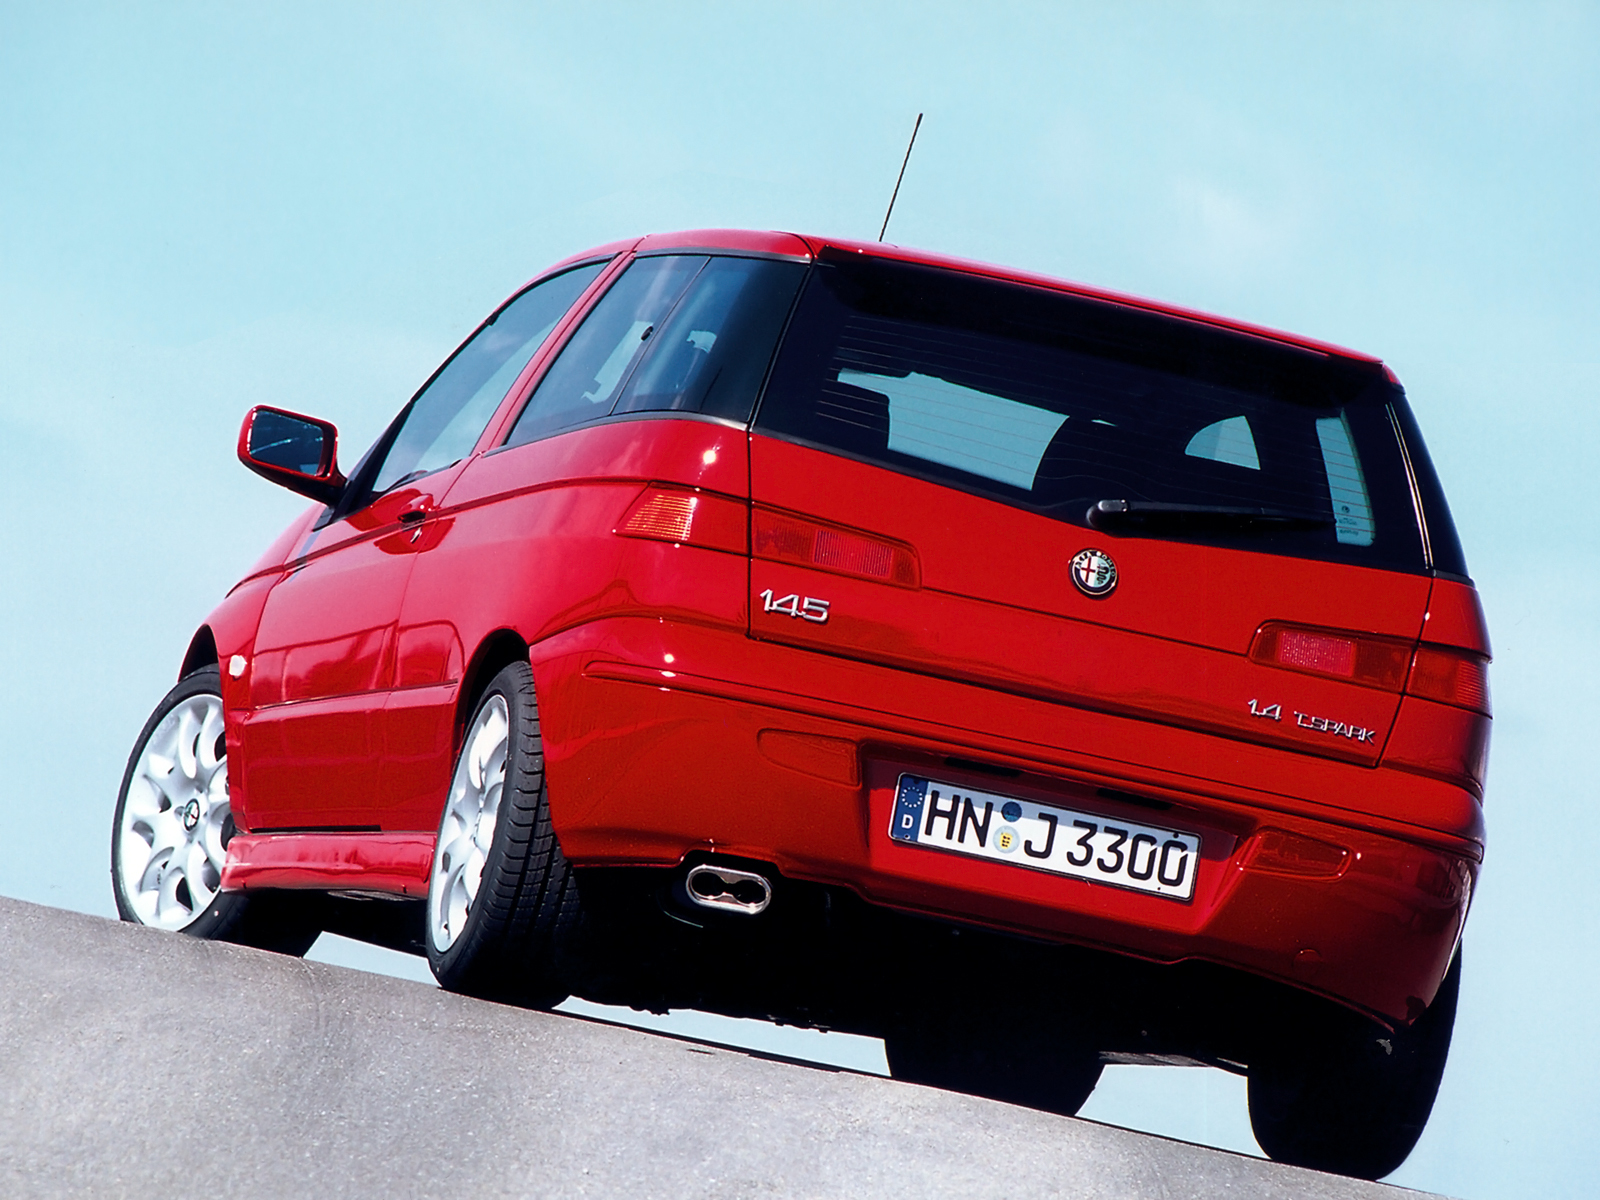 Alfa Romeo 145 is the red venom  #4